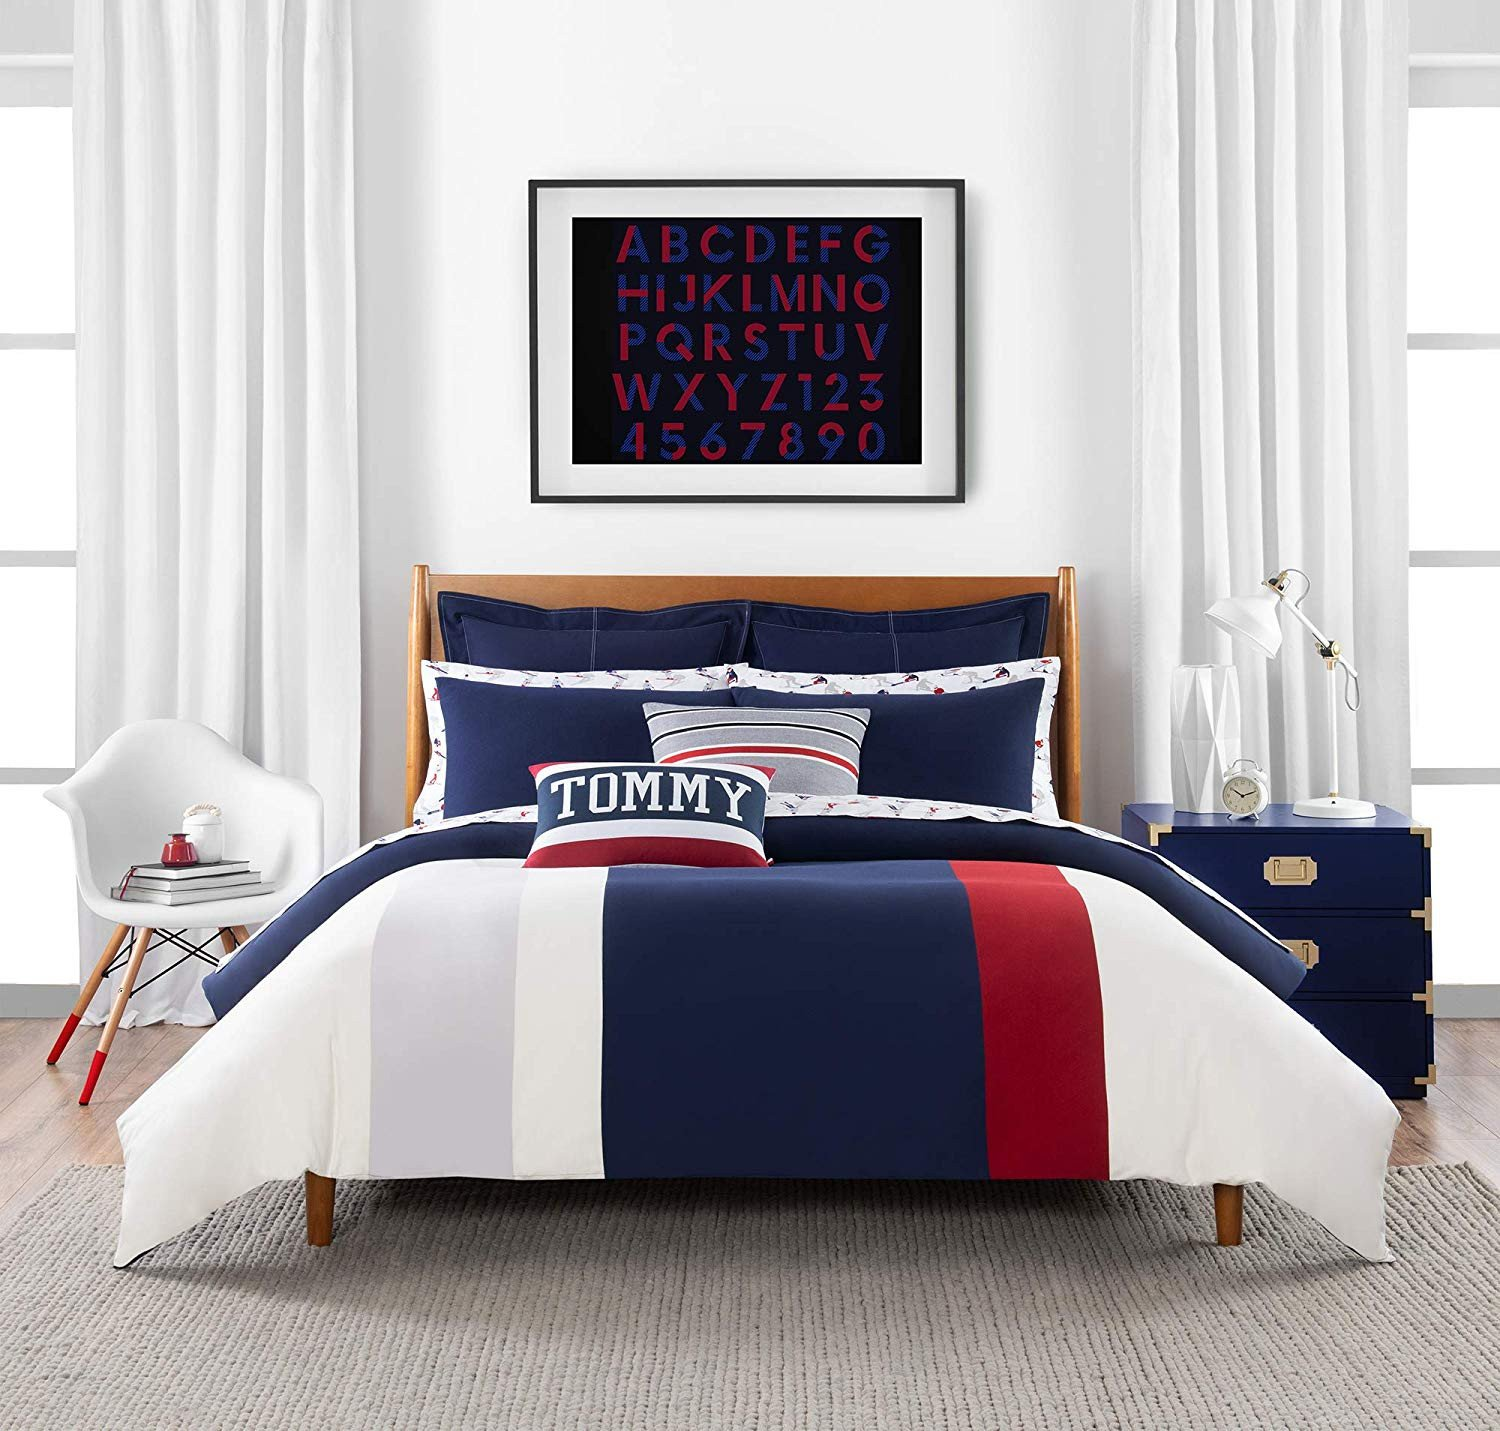 Black Bedroom Set Queen Awesome Amazon tommy Hilfiger Clash Of 85 Stripe Duvet Cover